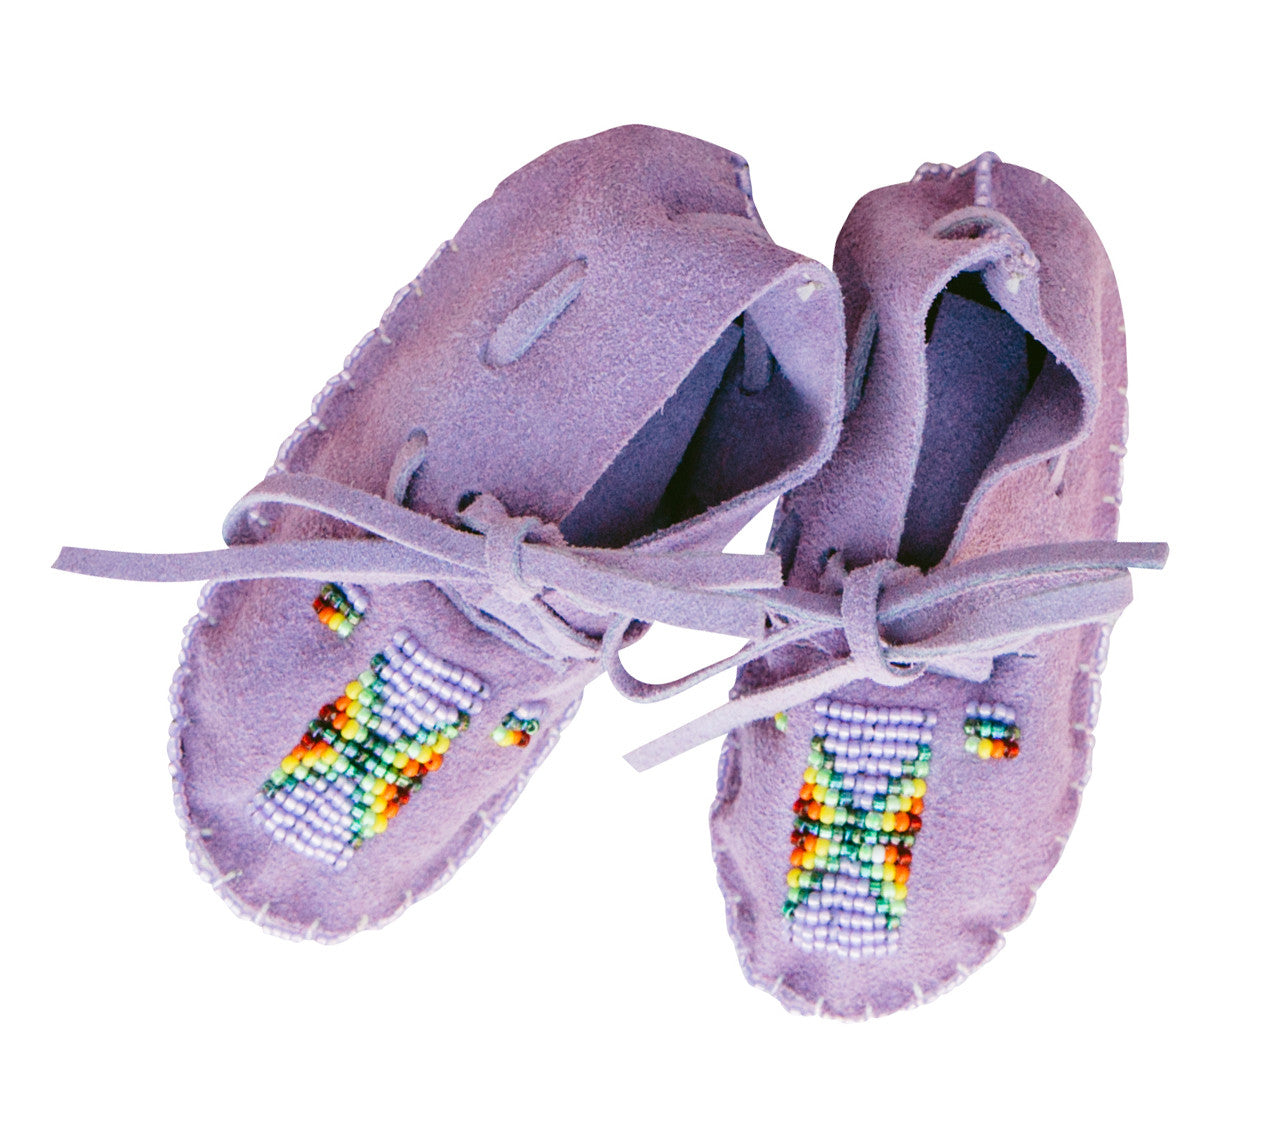 ONE OF A KIND NATIVE AMERICAN-MADE BABY MOCCASINS - Purple Suede